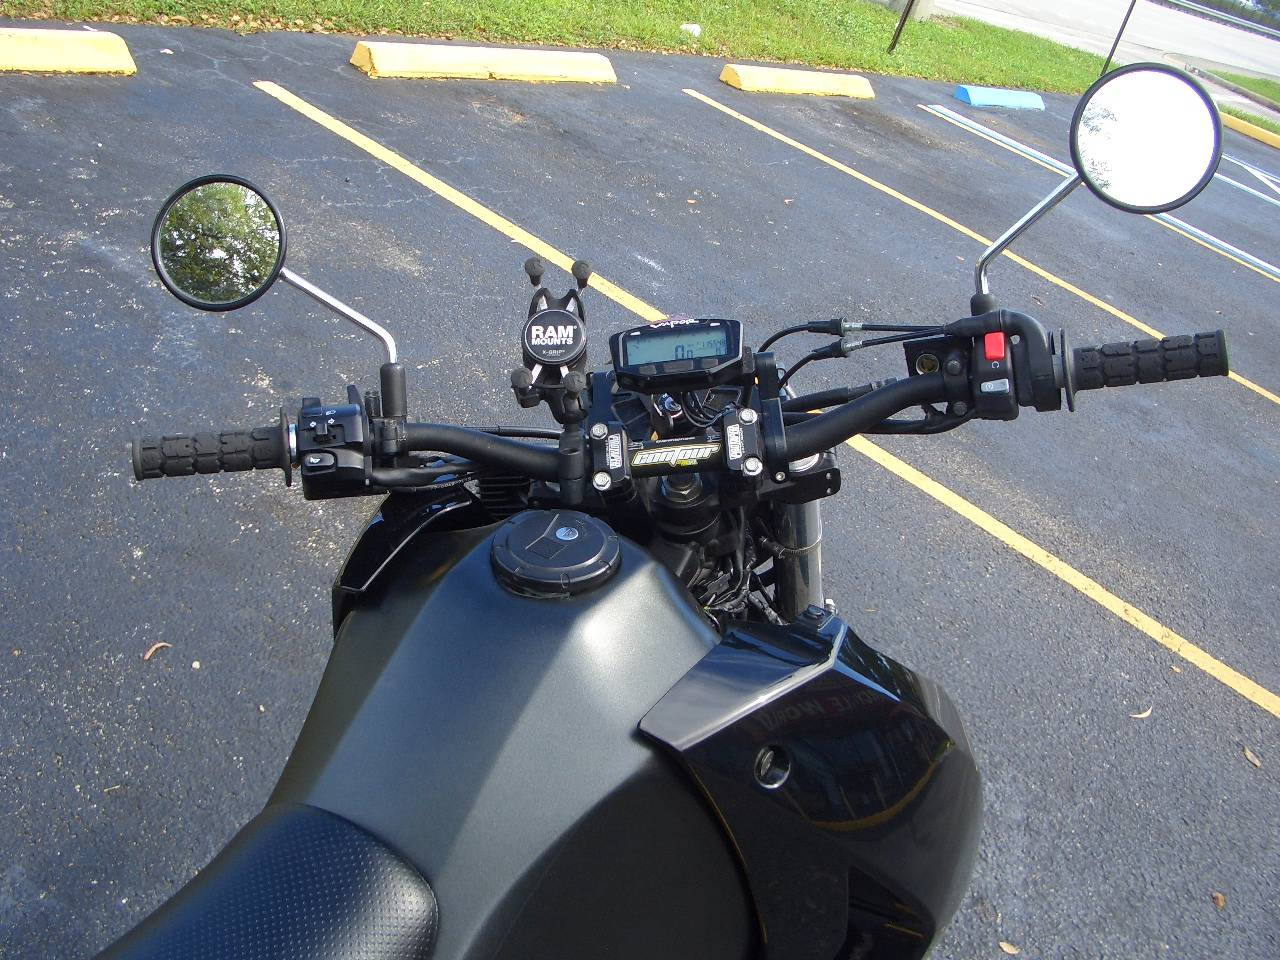 2018 Kawasaki KLR 650 in Fort Lauderdale, Florida - Photo 9